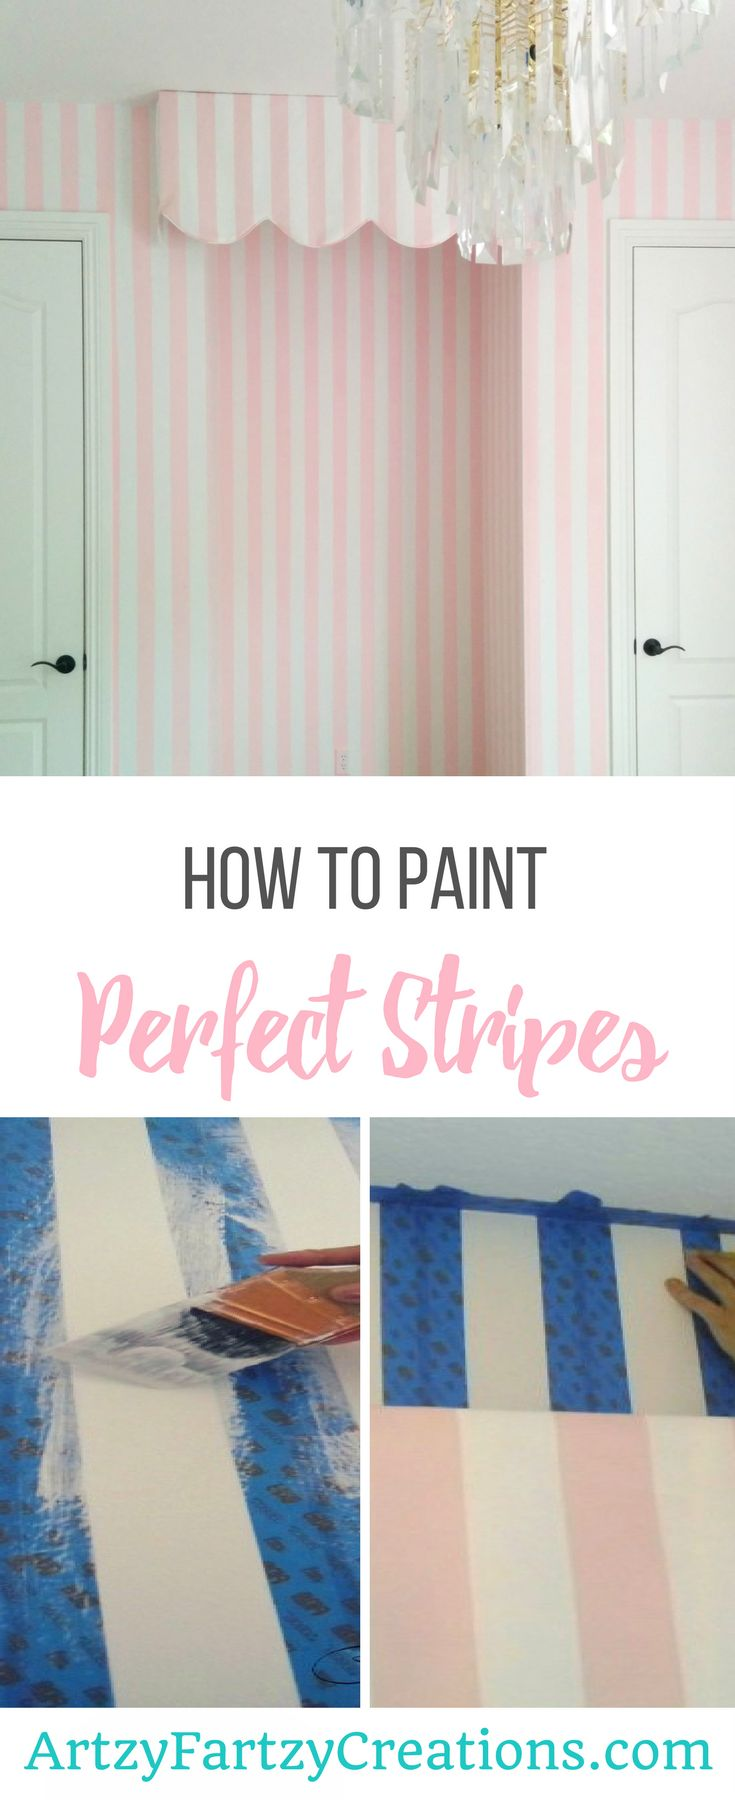 How to Paint Perfect Stripes | Six Steps to Painting Stripes on Walls by Cheryl Phan | Accent Wall | Feature Wall | Striped Wall | Nursery Paint Ideas | PInk and White Stripe